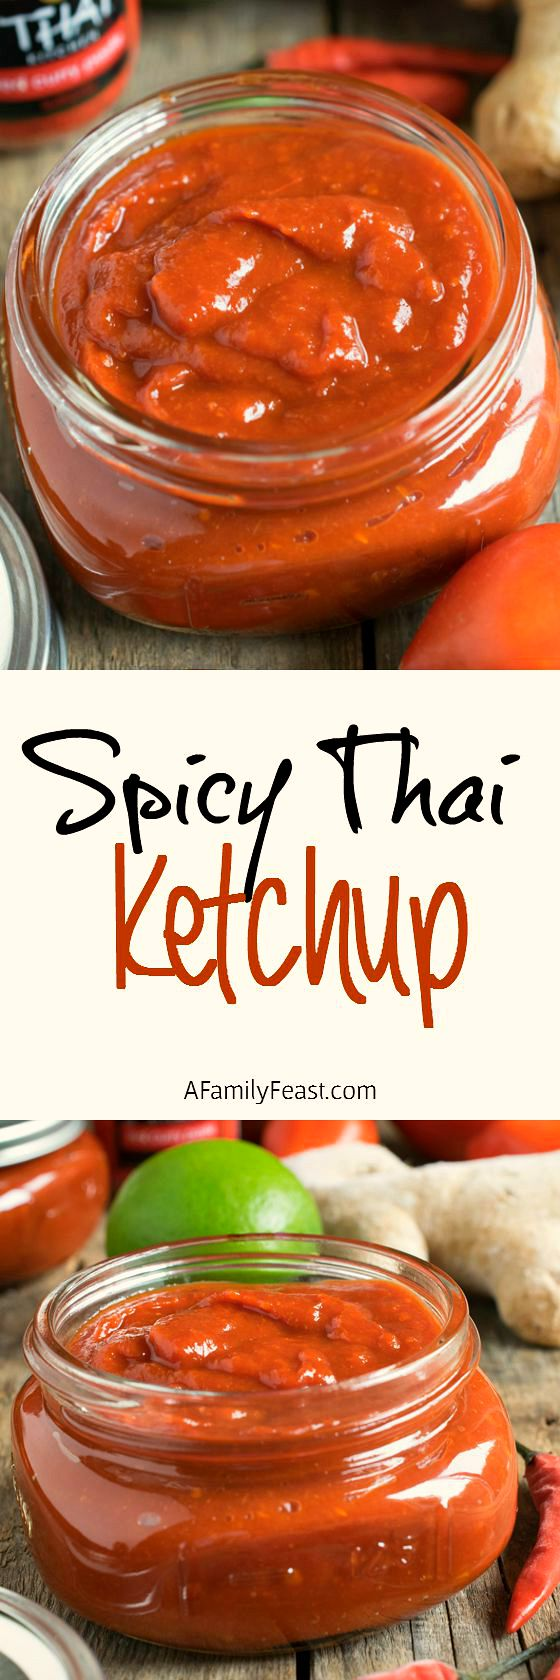 Spicy Thai Ketchup - Kick things up a bit with this easy and delicious spicy Thai ketchup!